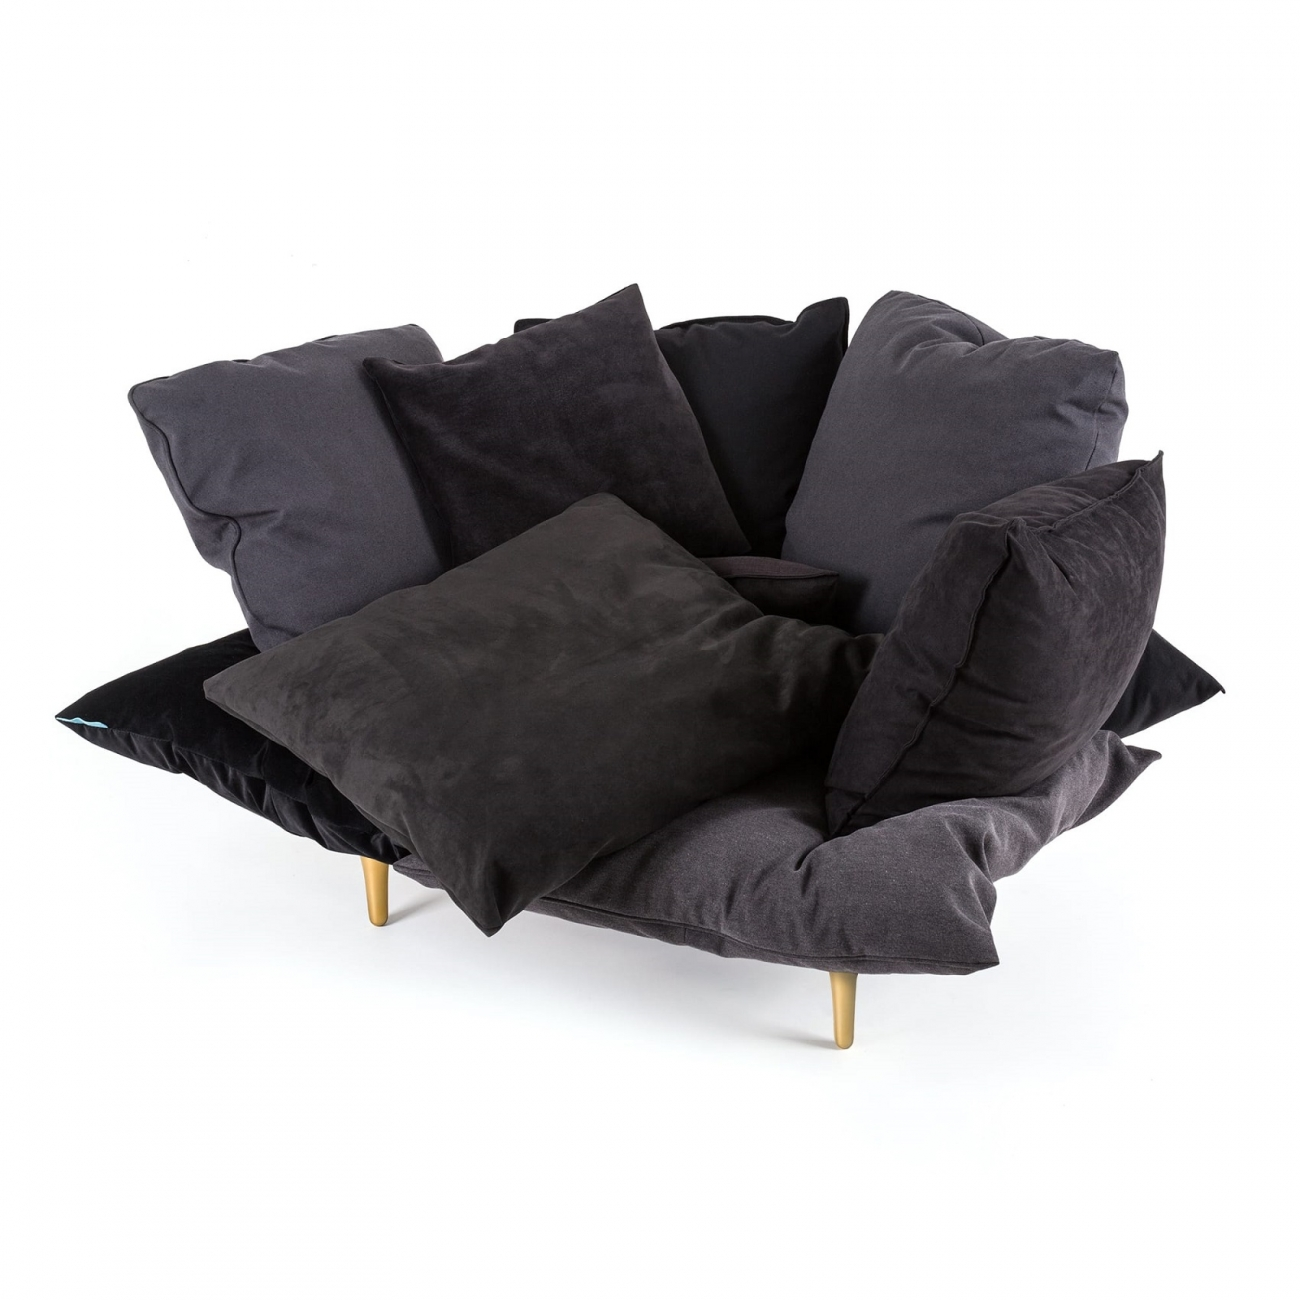 Surprising Seletti Comfy Charcoal Grey Armchair Tattahome Dailytribune Chair Design For Home Dailytribuneorg